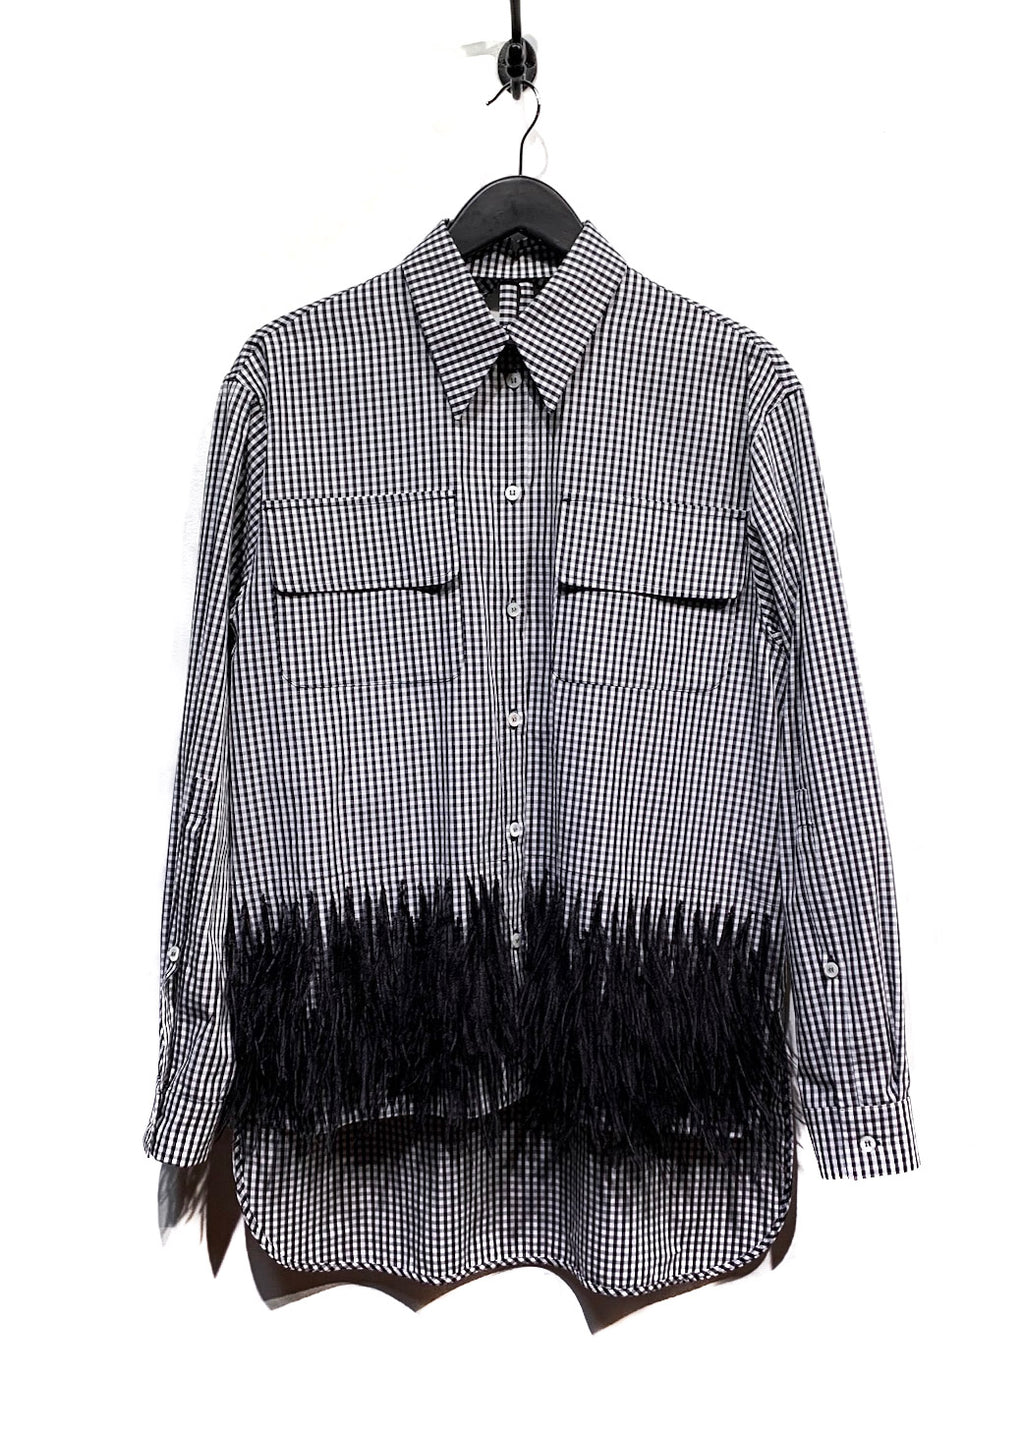 No.21 Black & White Gingham Blouse with Ostrich Feathers Detailing